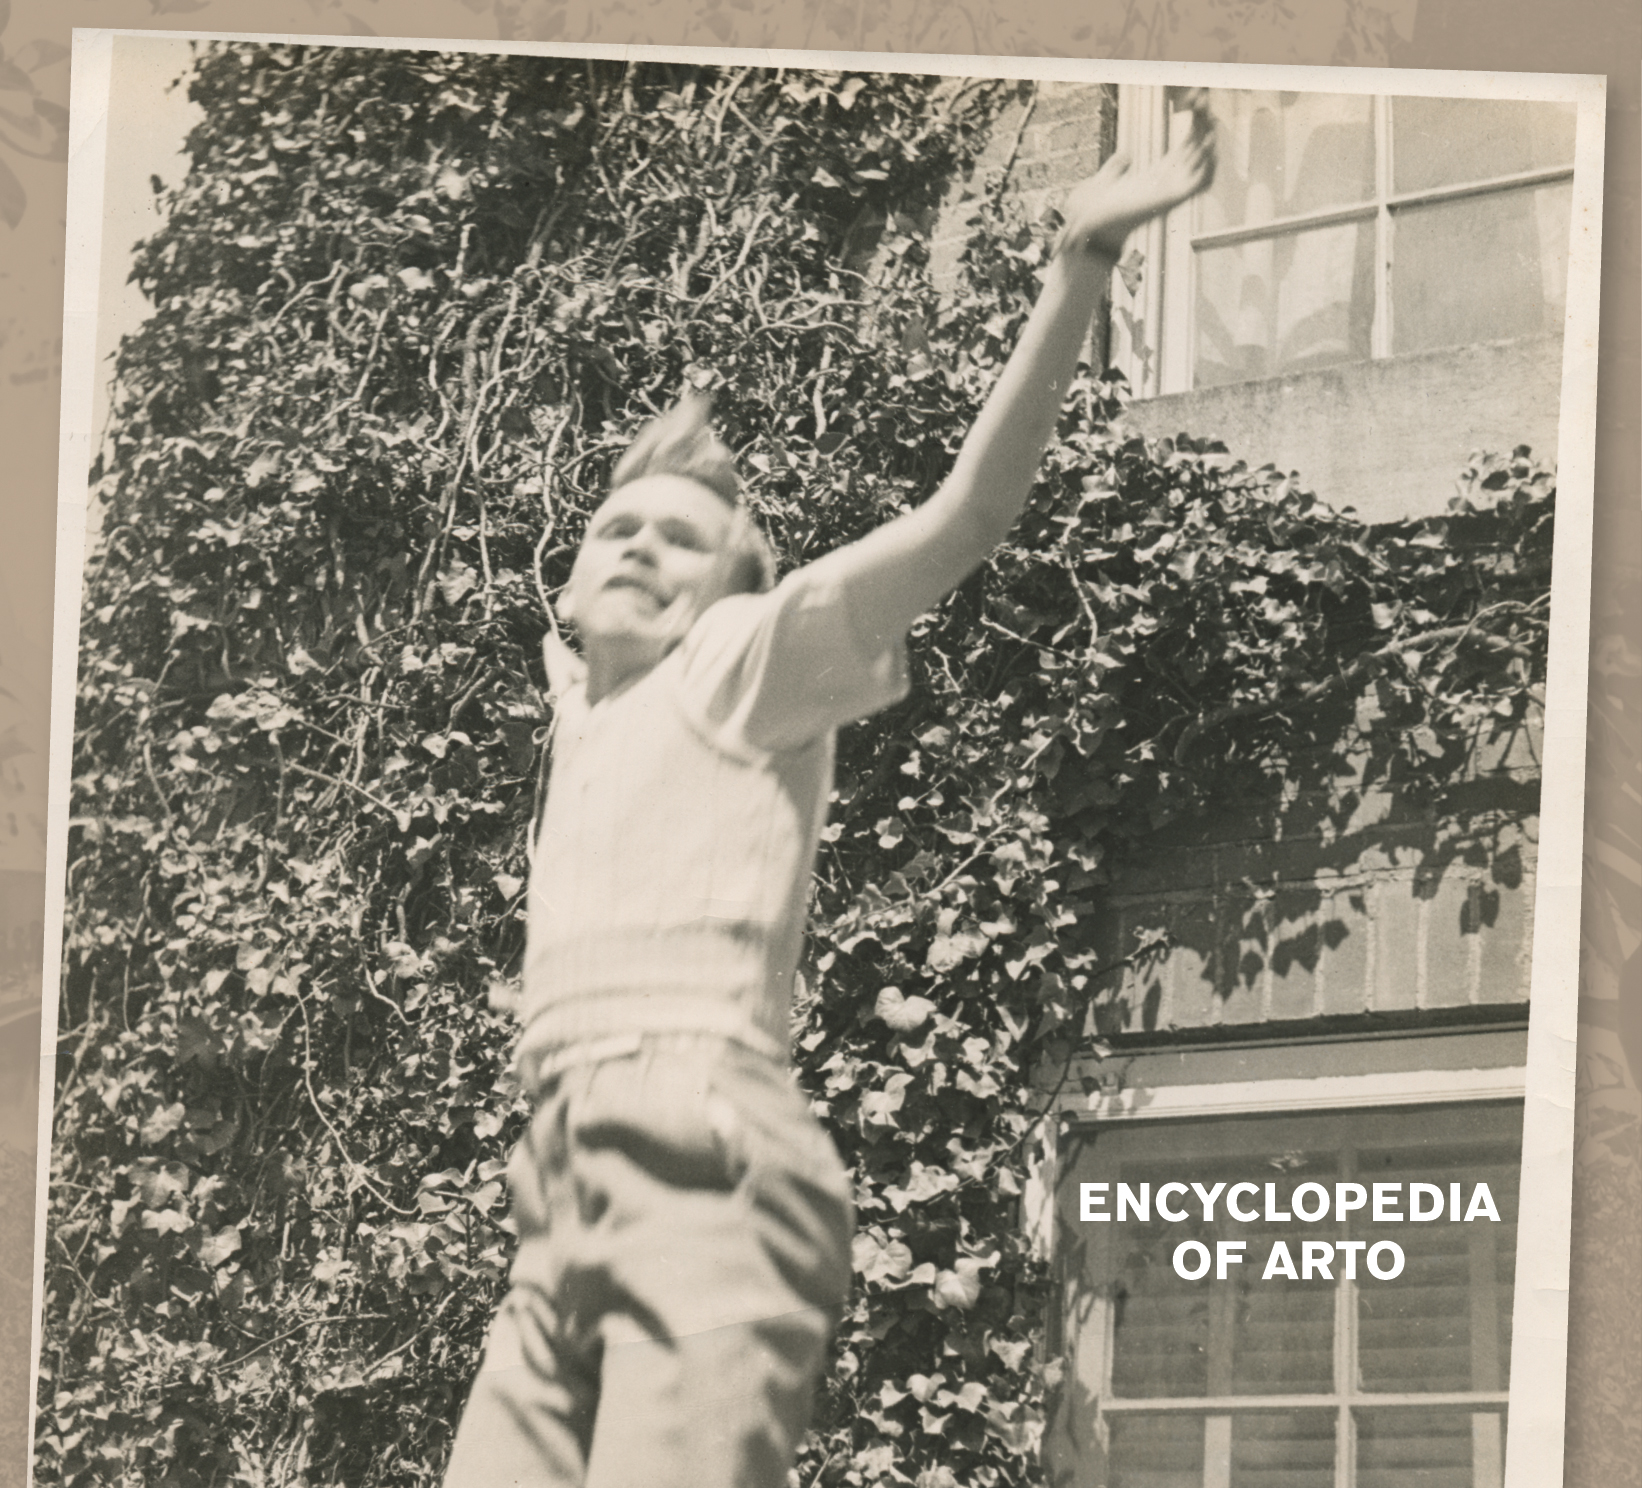 Arto Lindsay - Encyclopédia of Arto